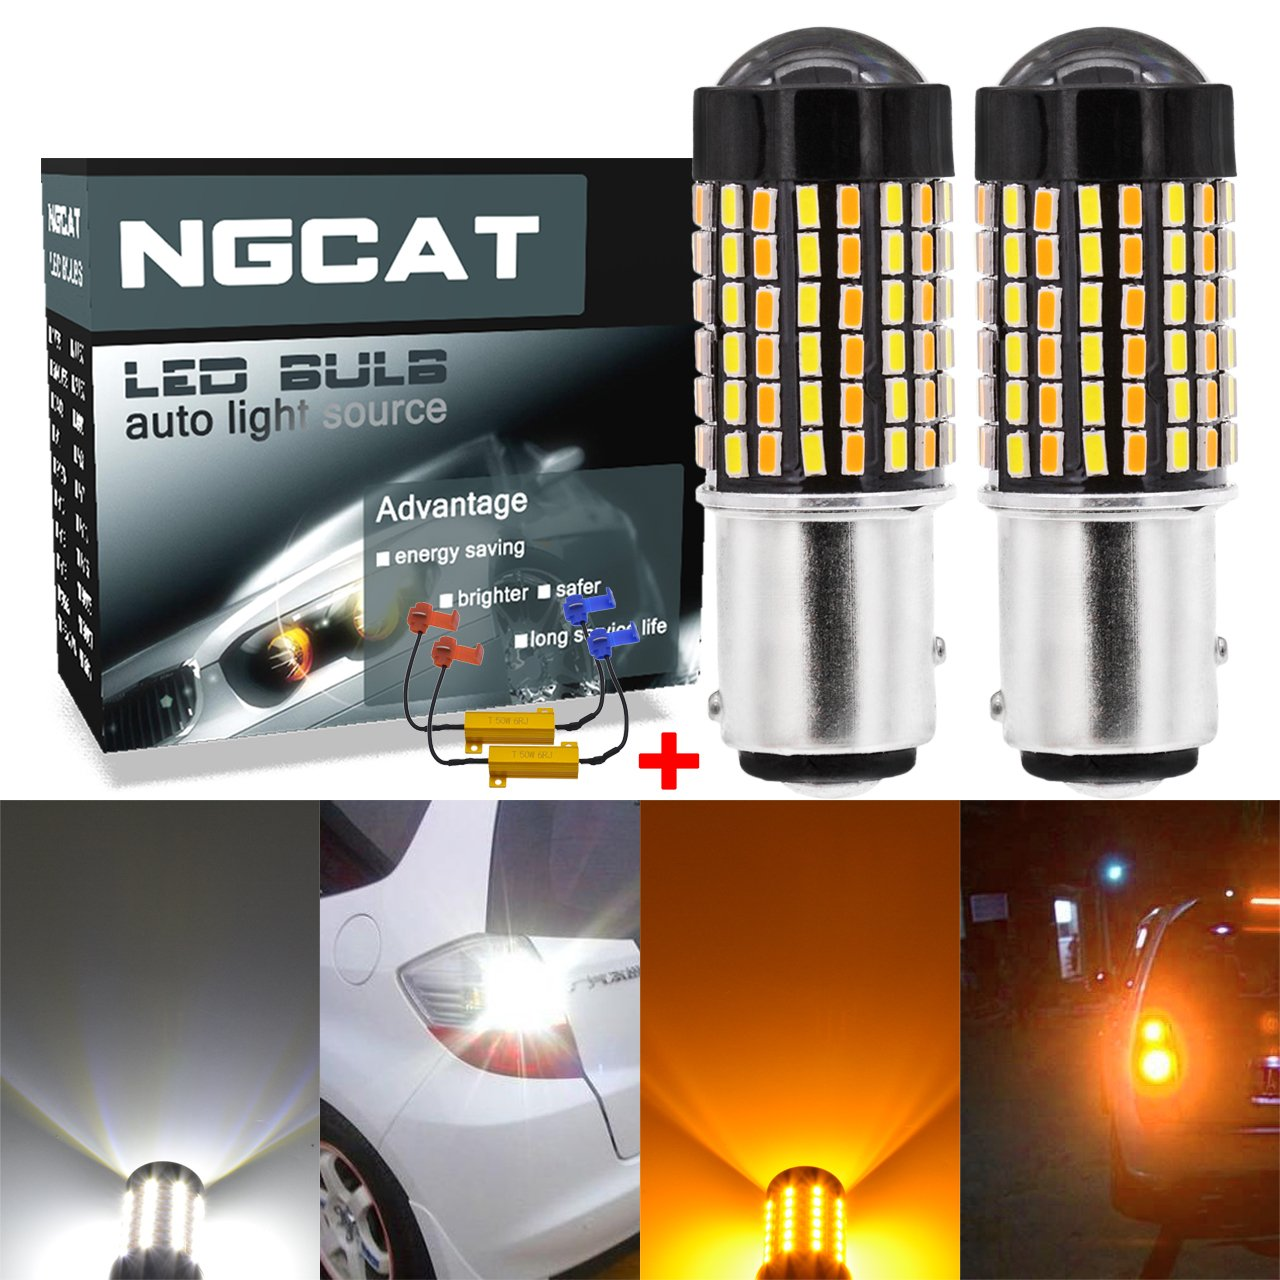 NGCAT 2PCS 6500K 1157 BAY15D 800 Lumens Dual Color White/Amber Canbus Error Free Switchback Turn Signal Light Led Bulbs 3014 120-SMD Lens LED Light Lamp with 50W 8ohm Load Resistors